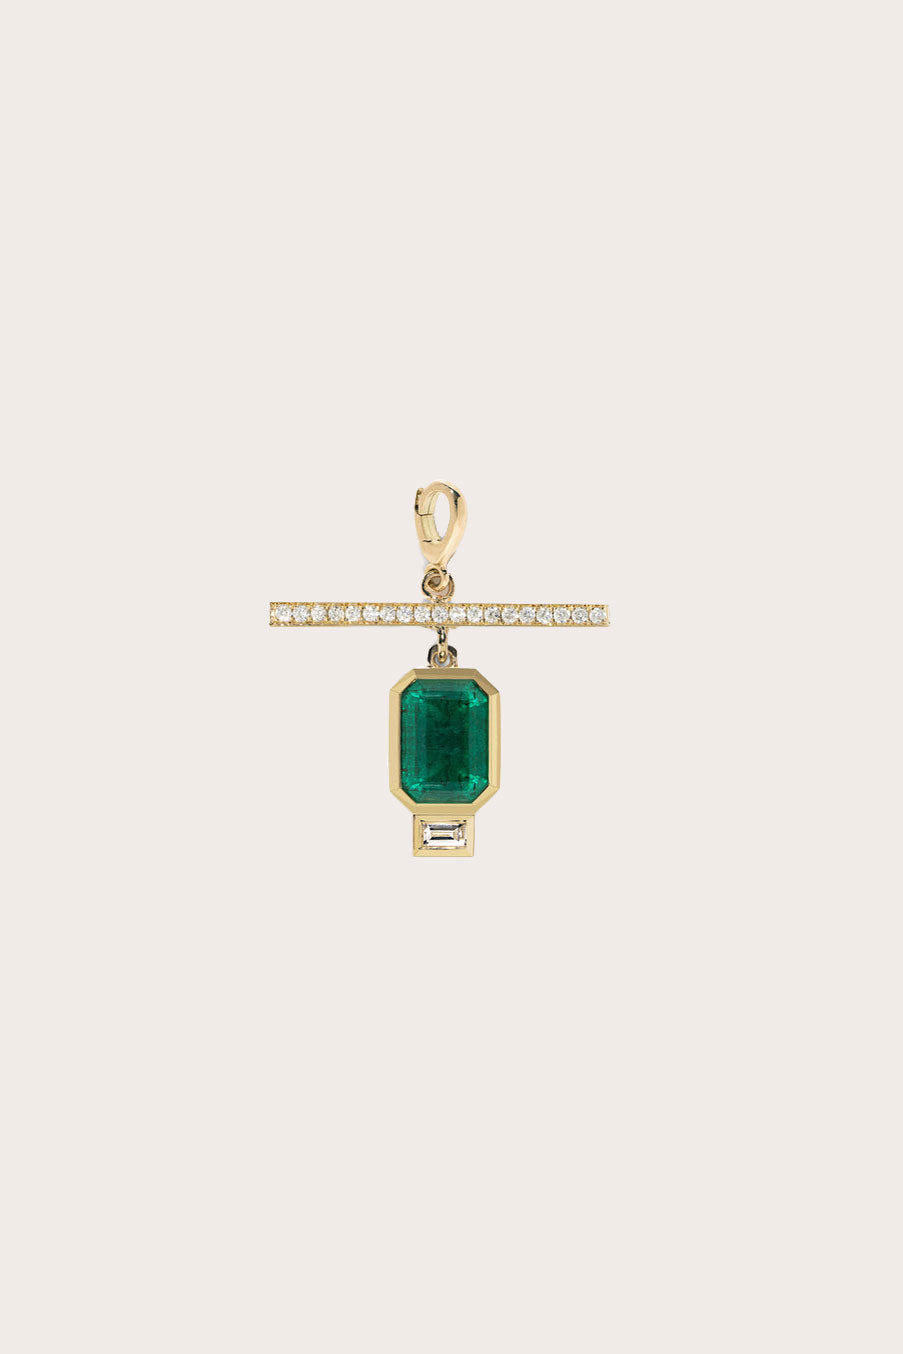 Azlee - Emerald NESW Diamond Charm, Gold